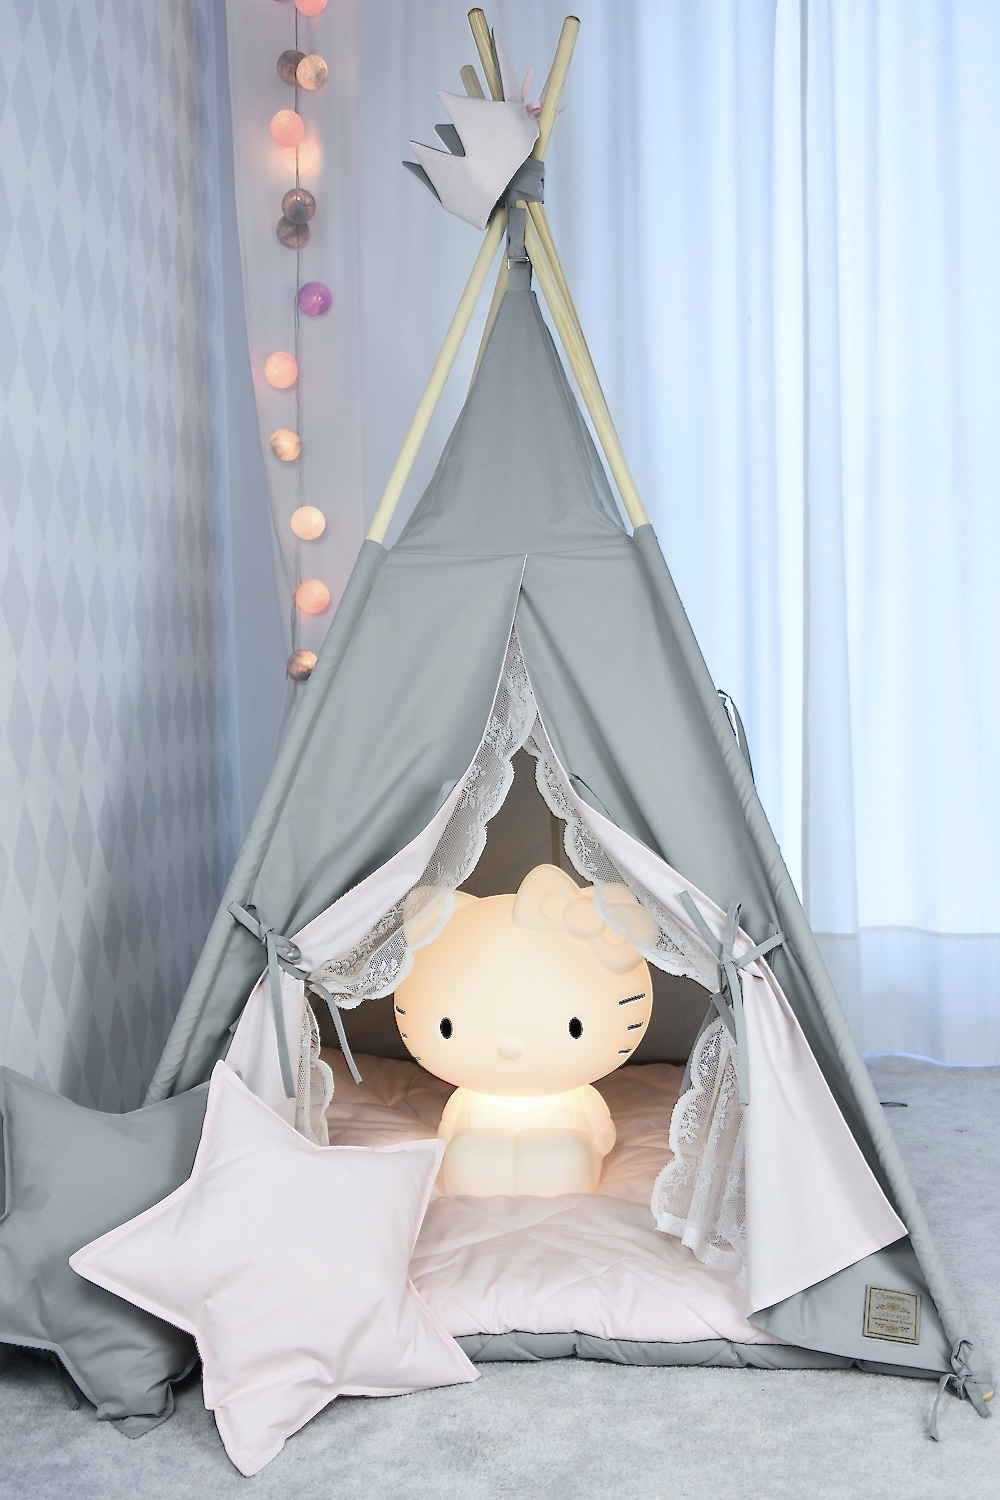 V-Line teepee tent premium quality hight for kids